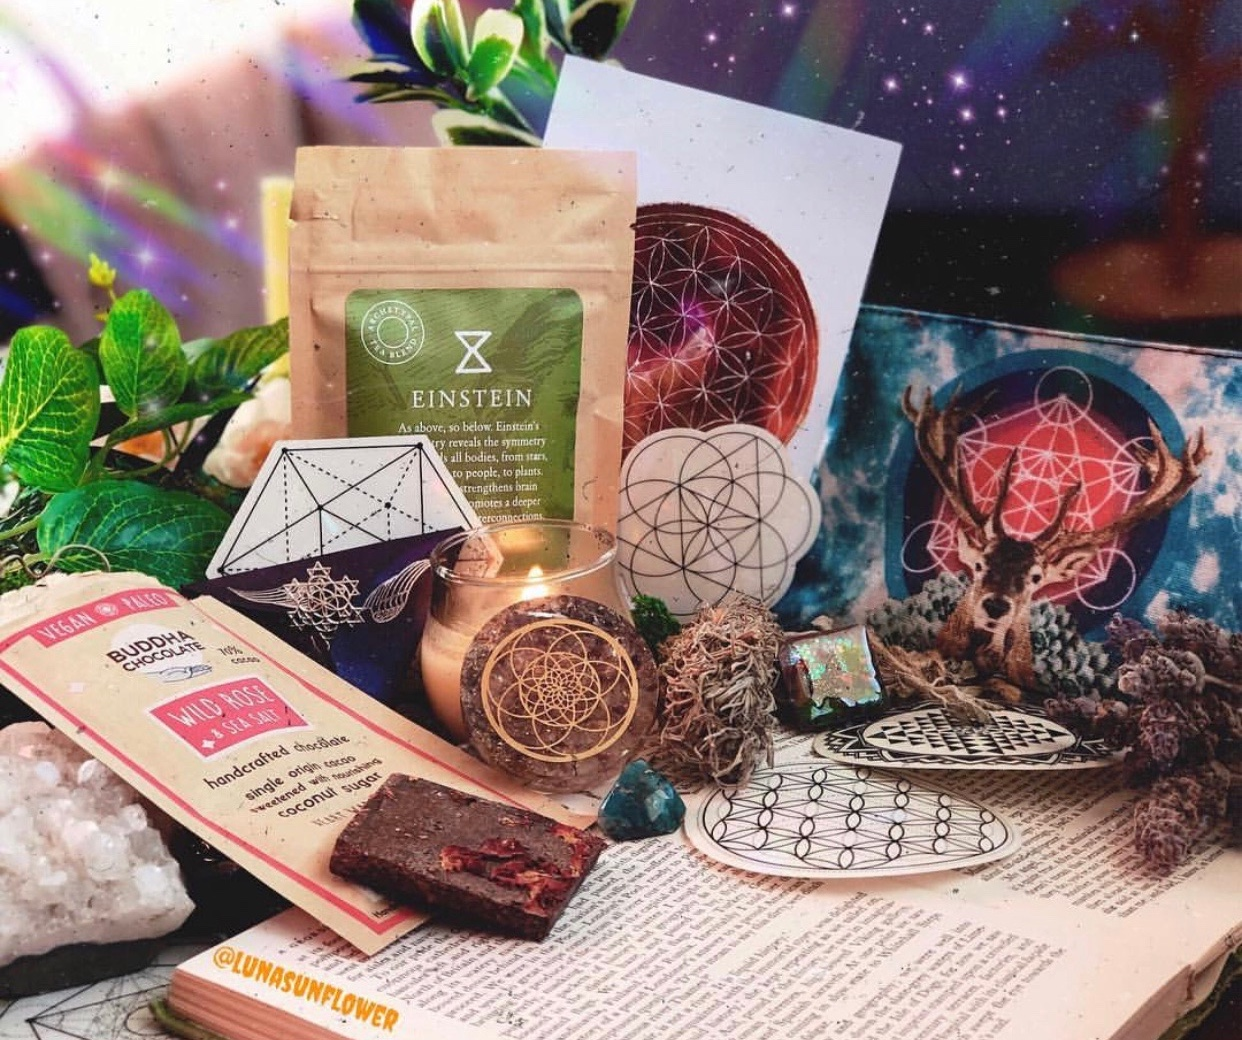 Goddess Provisions' Sacred Geometry Box - Artemis Teas & Botanicals, along with several other fantastic makers and brands, partnered with Goddess Provisions on a Sacred Geometry Box for their March Goddess Box subscription. We had so. much. fun!